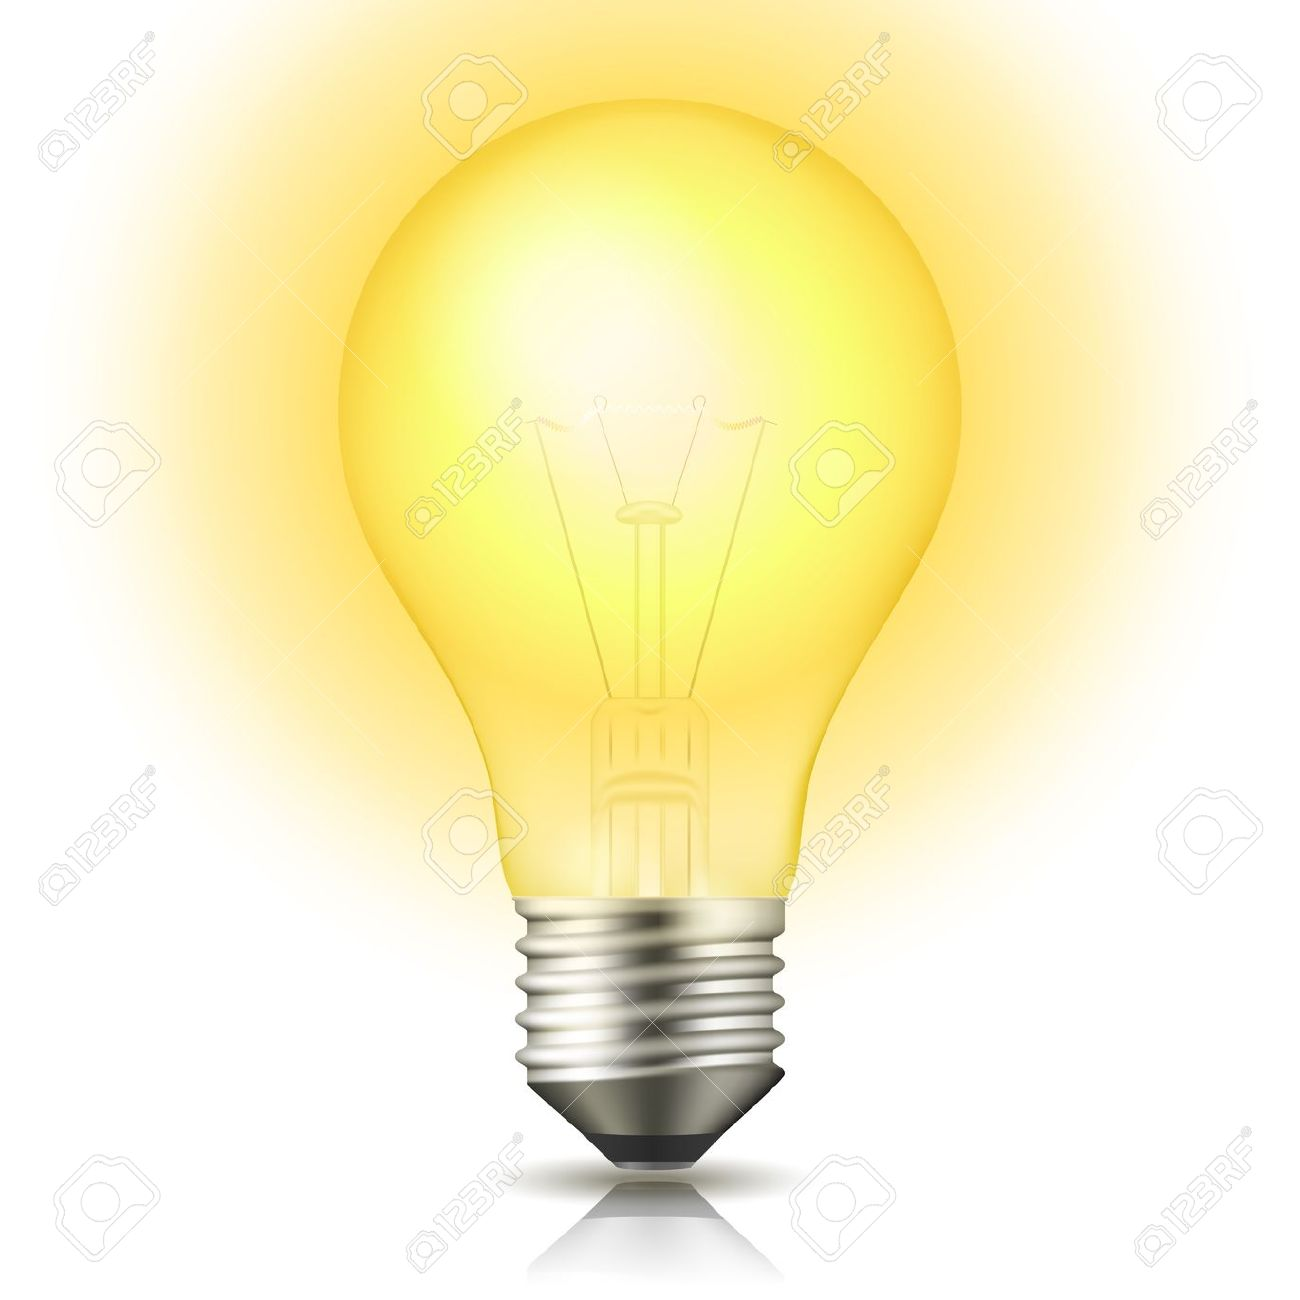 3,365 Luminosity Lamp Stock Vector Illustration And Royalty Free.